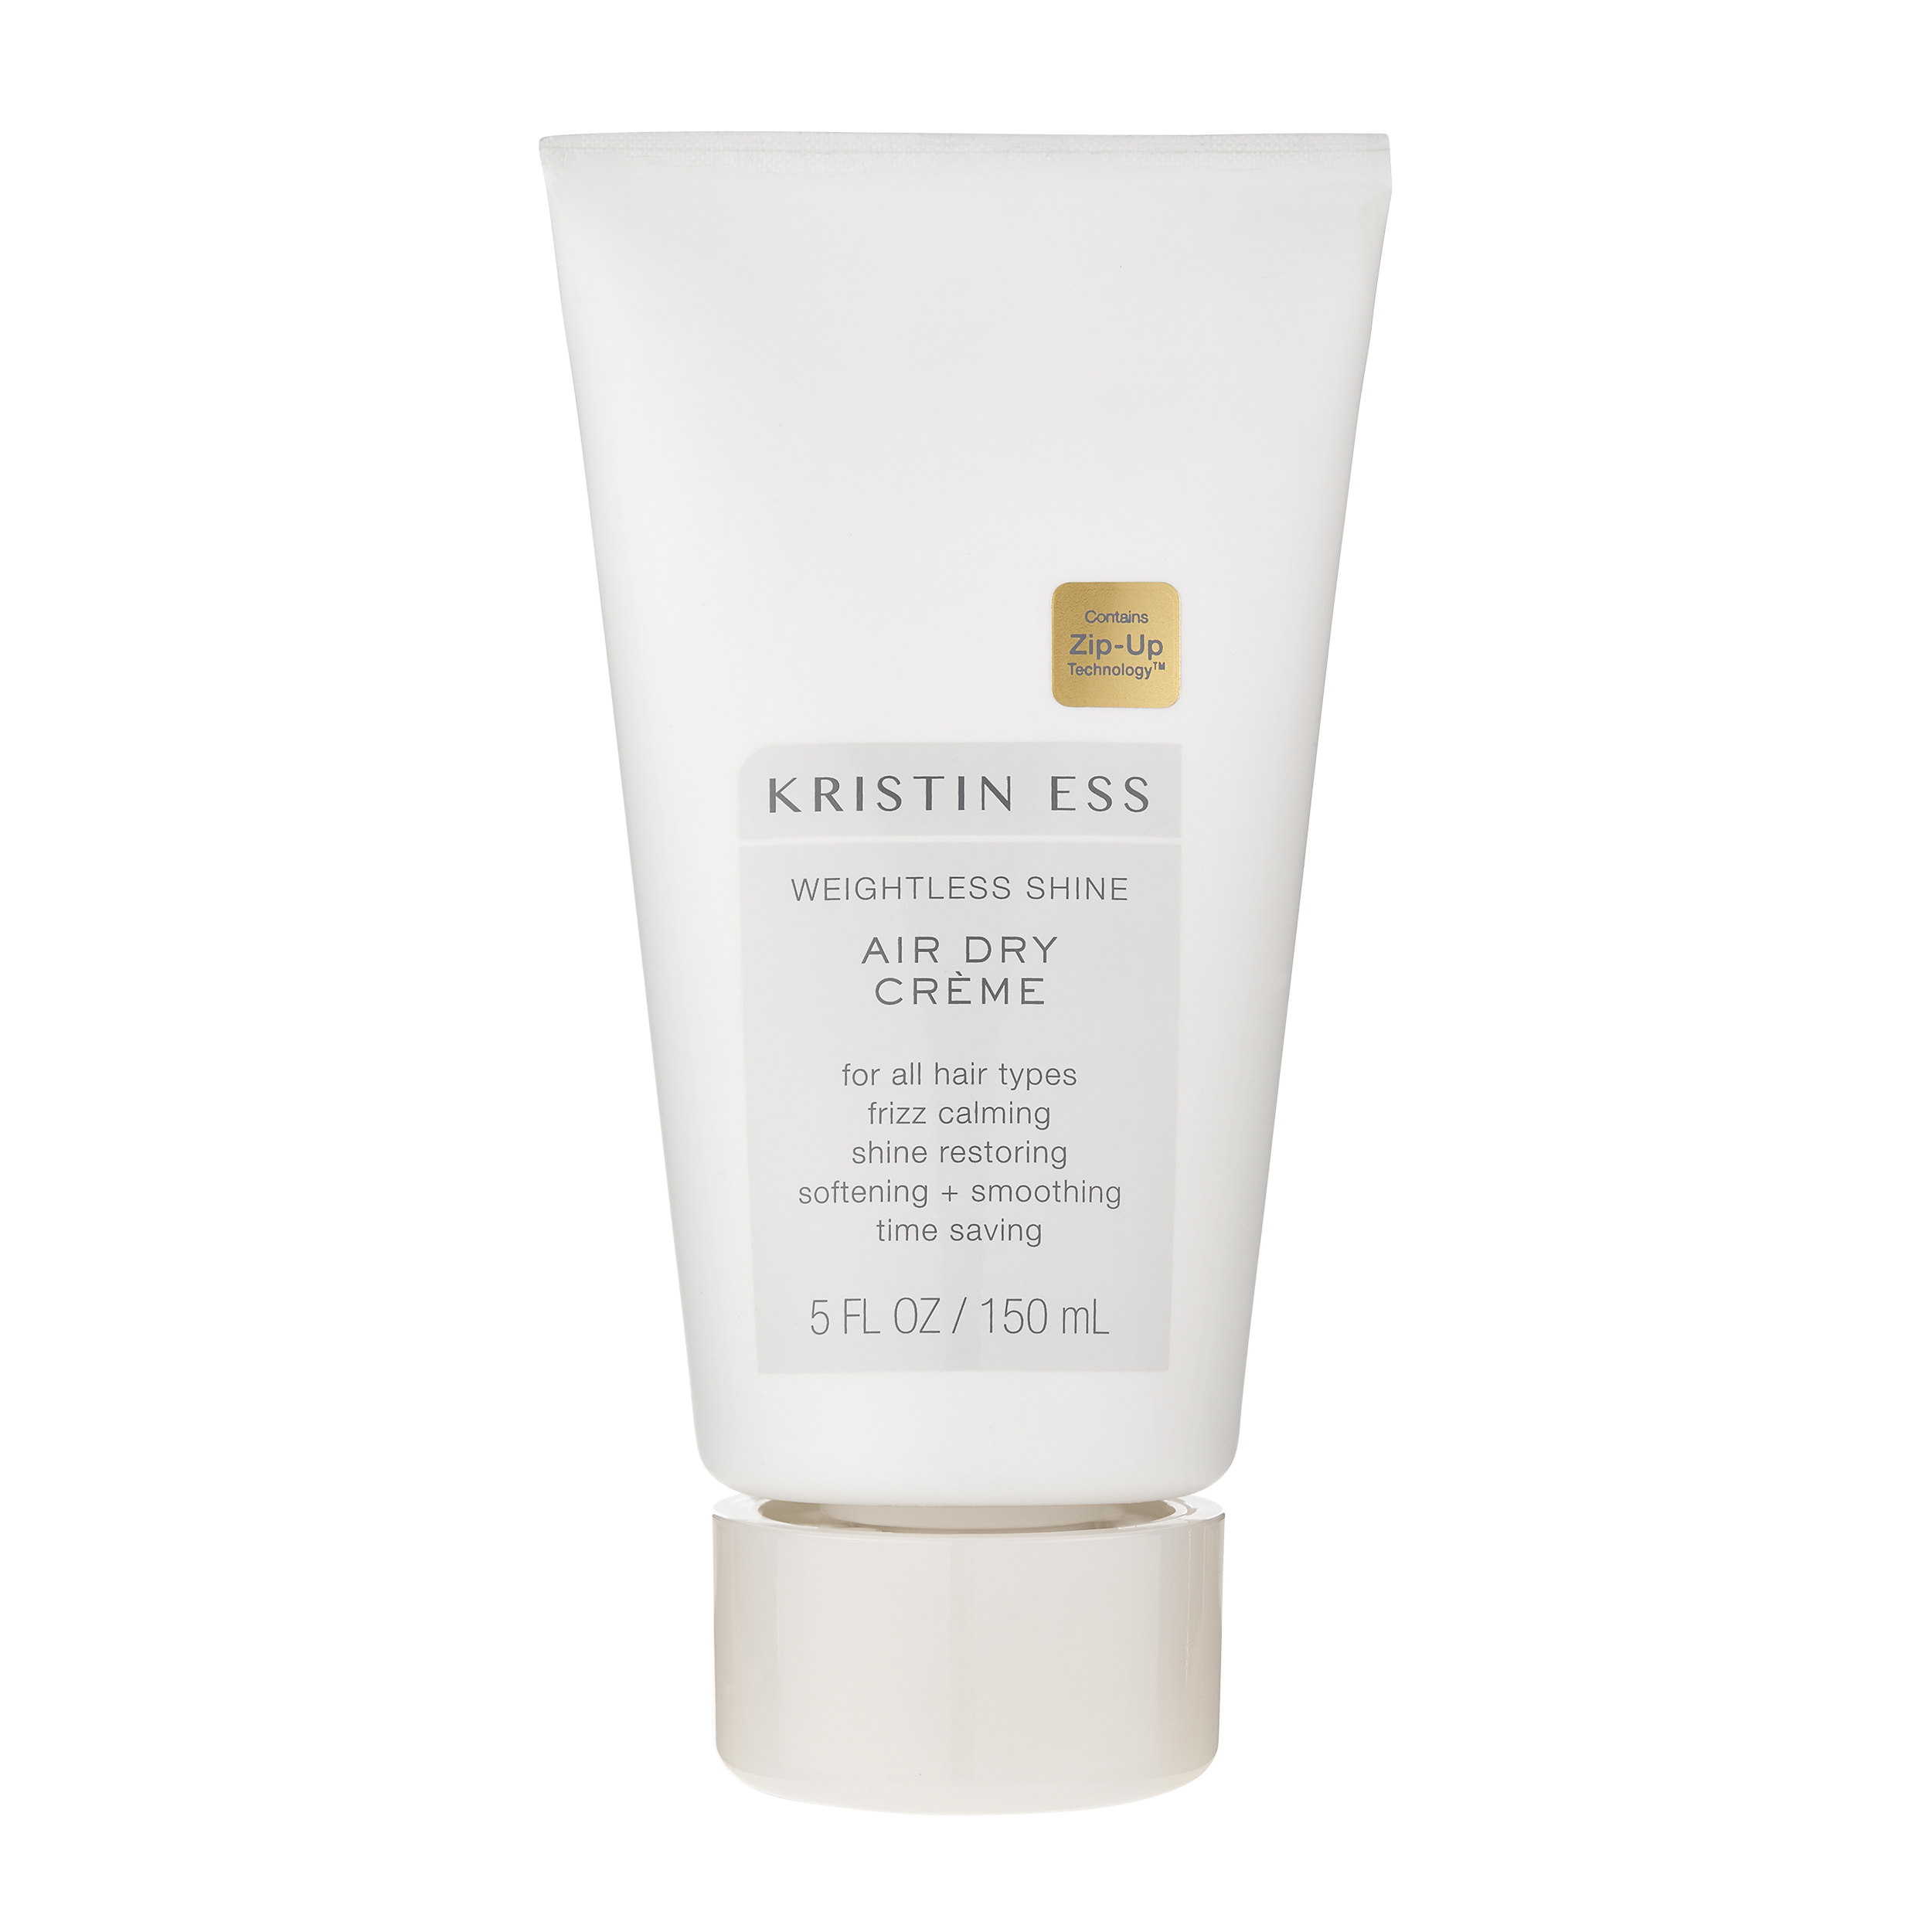 Weightless Shine Air Dry Creme